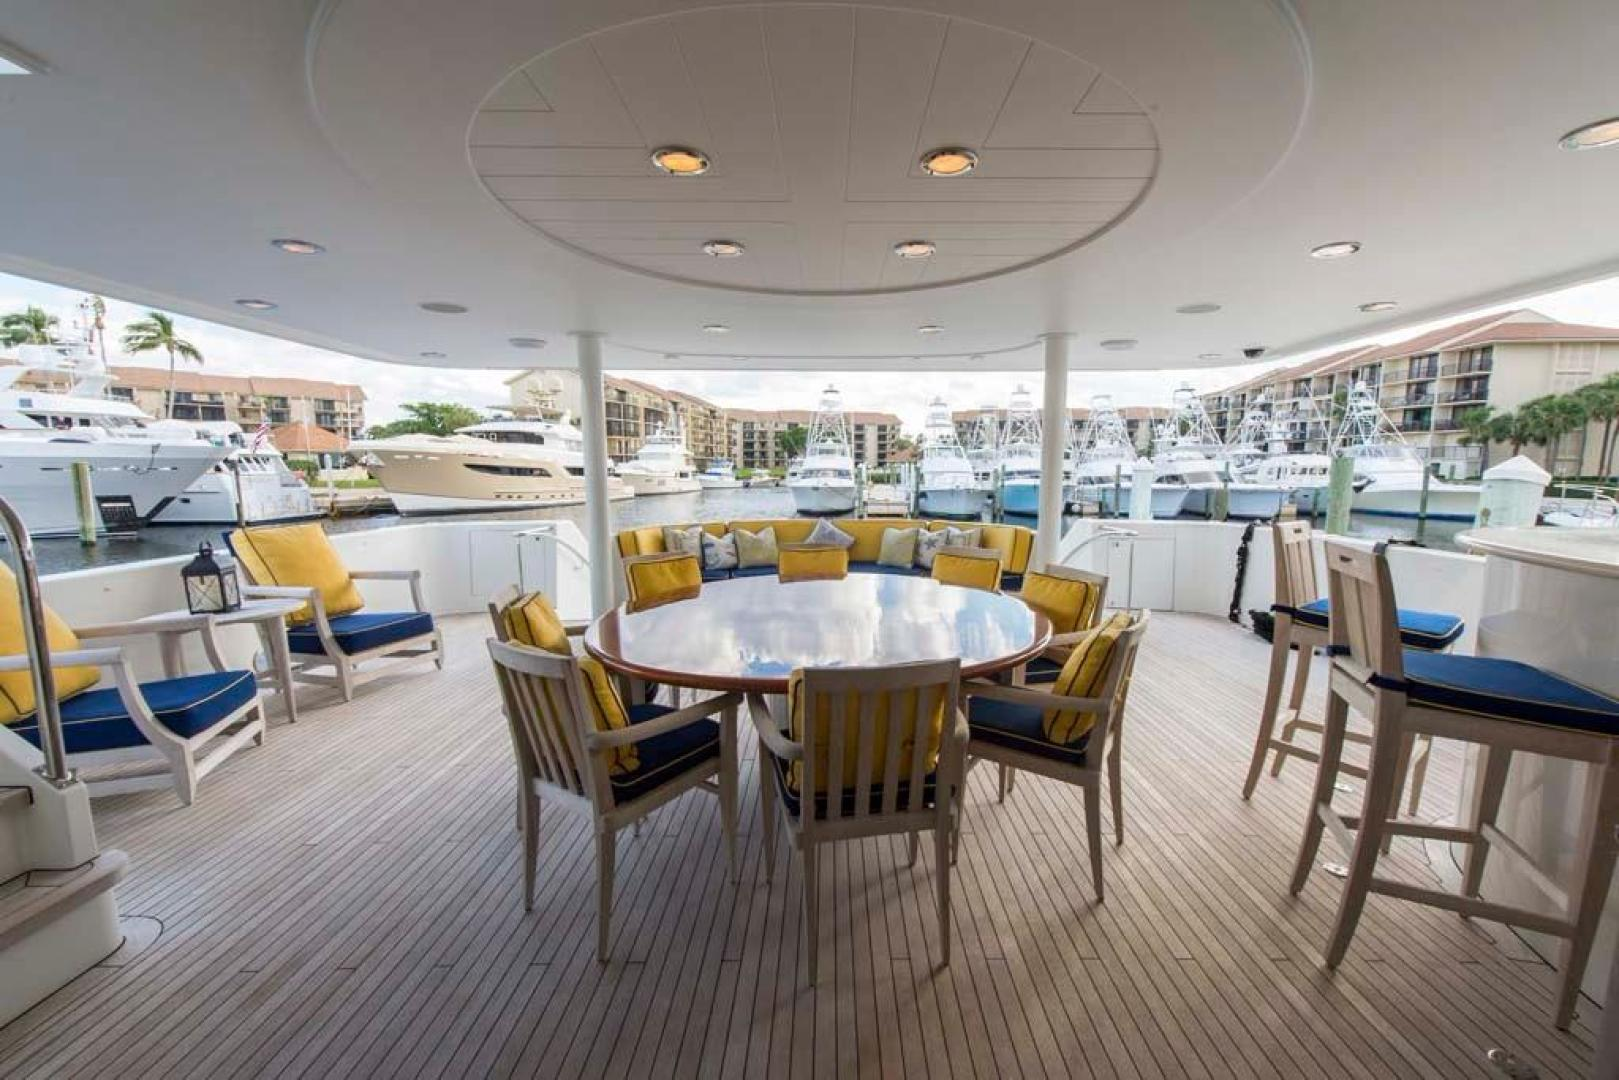 Westport-Tri-Deck-2003-Vision-Jupiter-Florida-United-States-Aft-Deck-370696